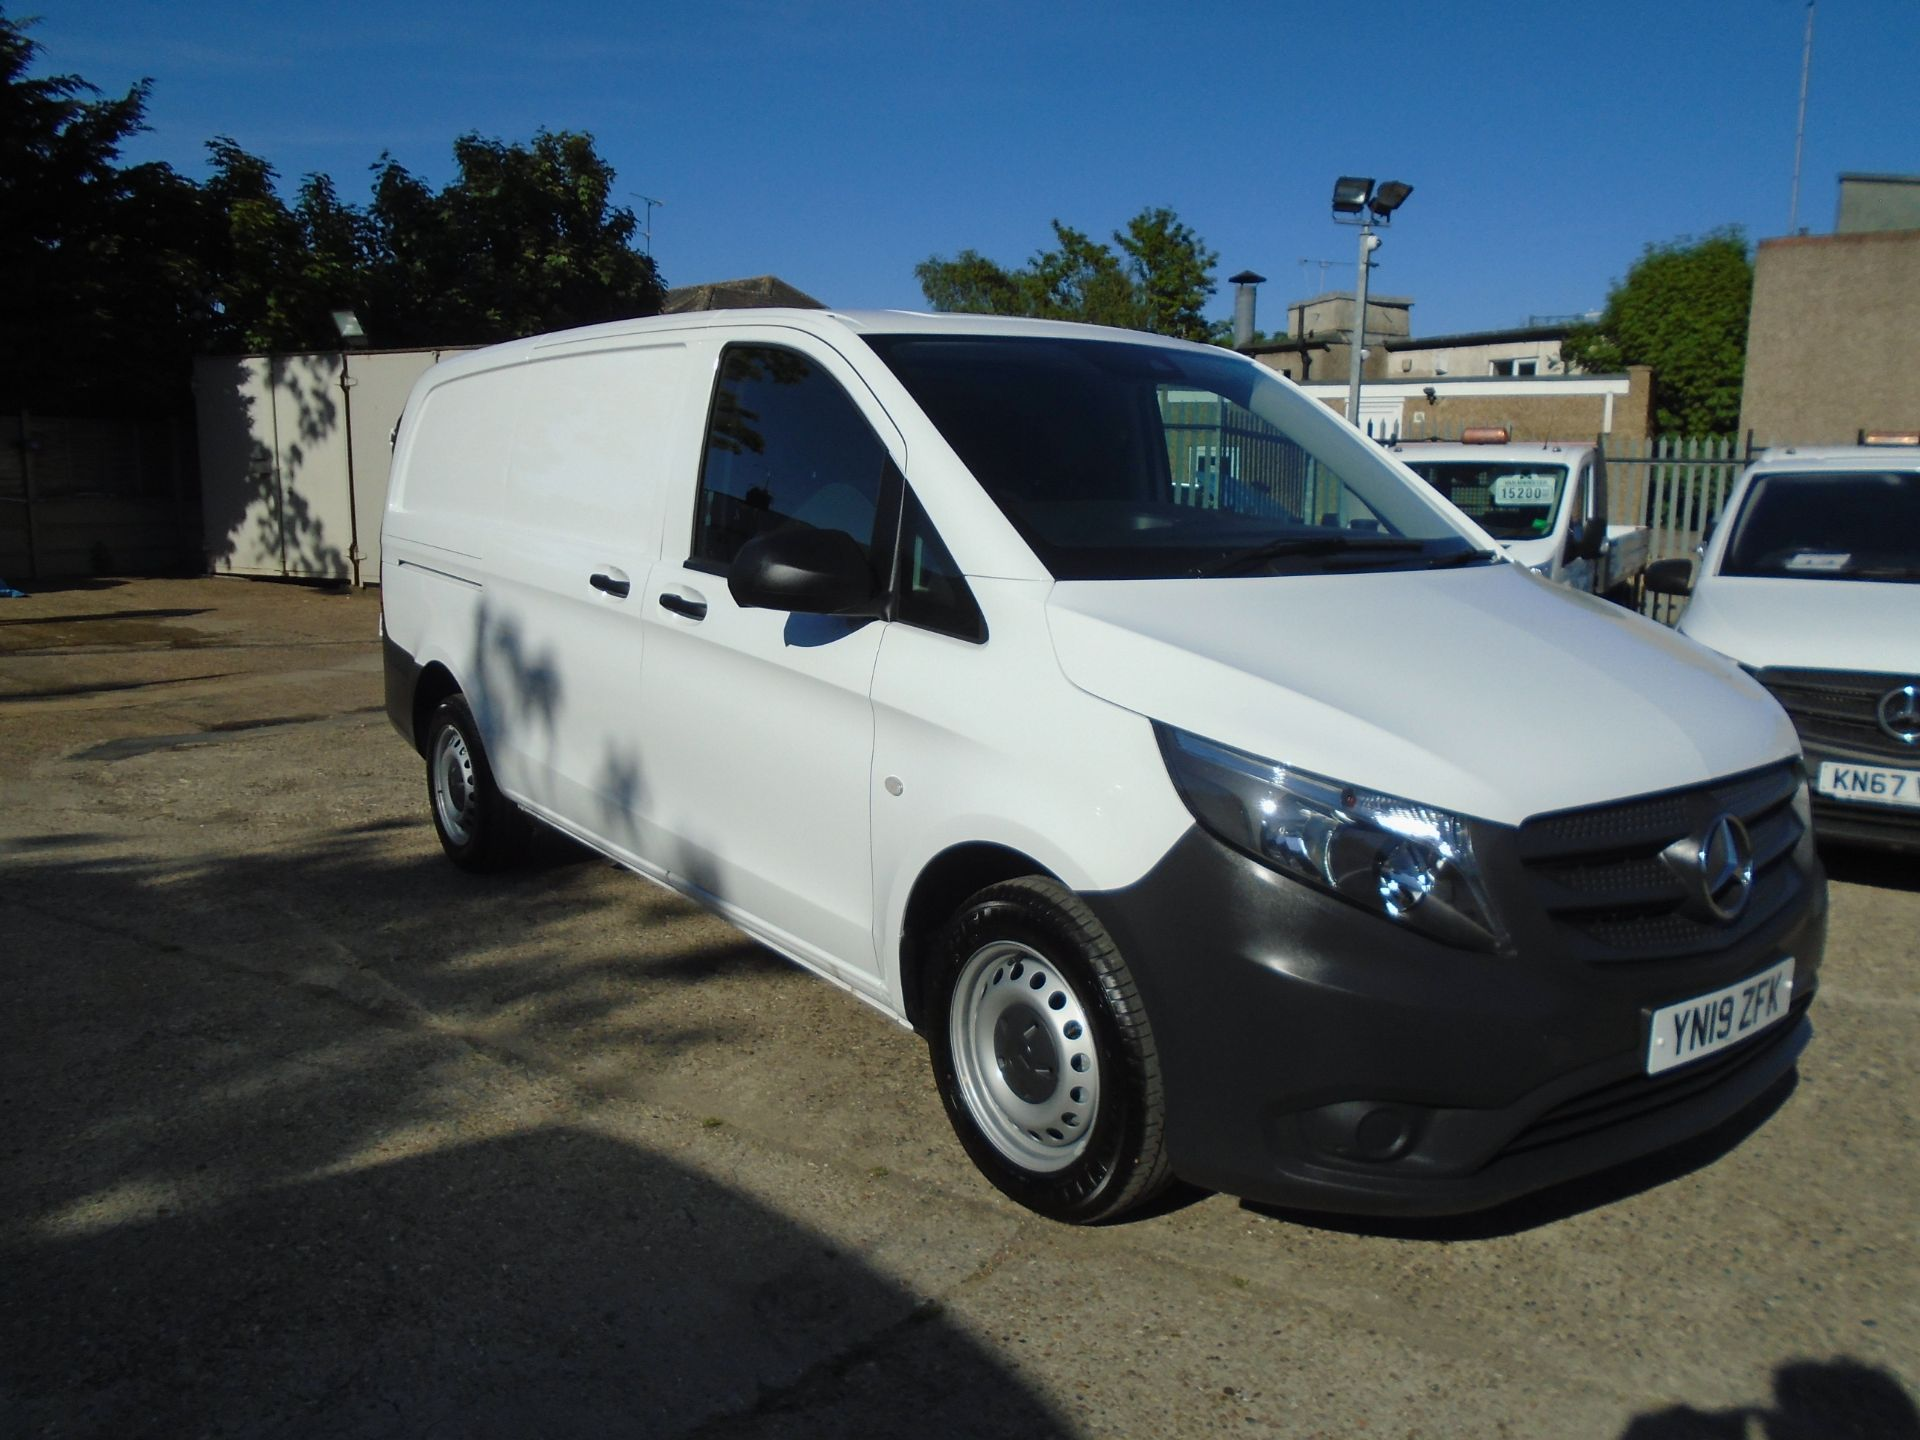 2019 Mercedes-Benz Vito 111Cdi Van Euro 6 Massive specification A/C Air Con, Delivery Miles Only (YN19ZFK)